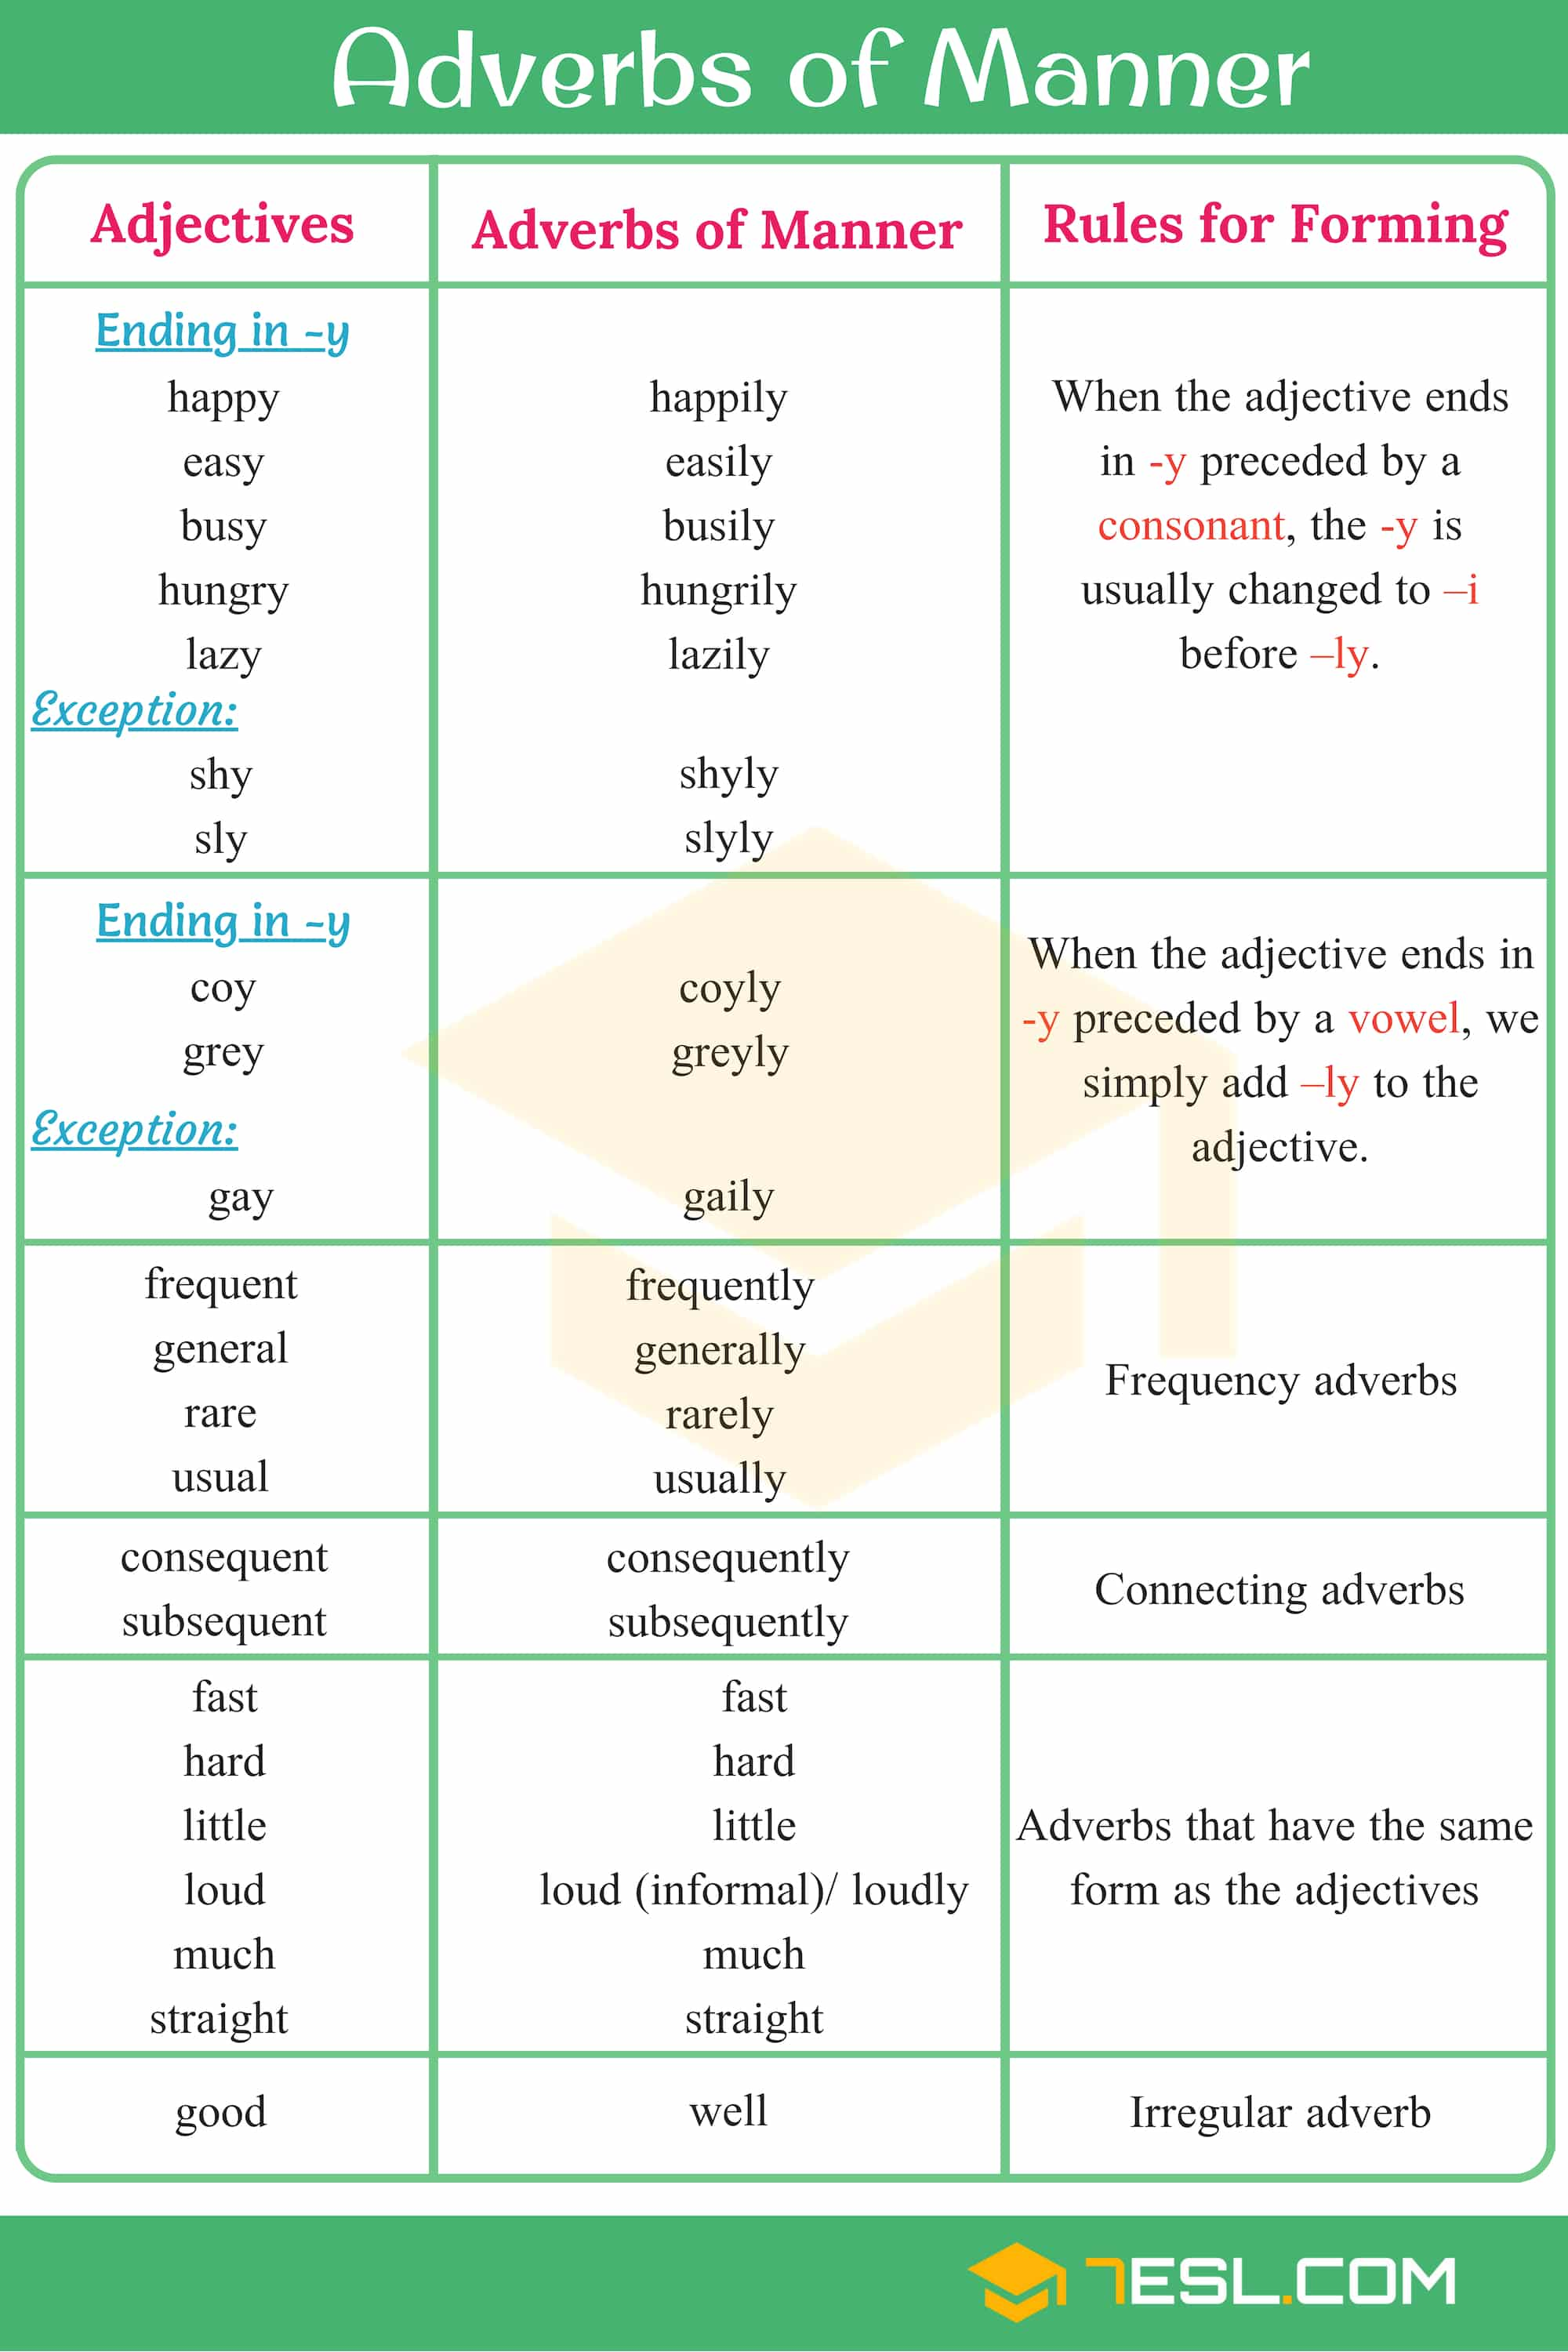 Adverbs of Manner!!! Learn list of Adverbs of Manner in English with examples and useful rules to form manner adverbs to help you use them correctly and increase your English vocabulary.